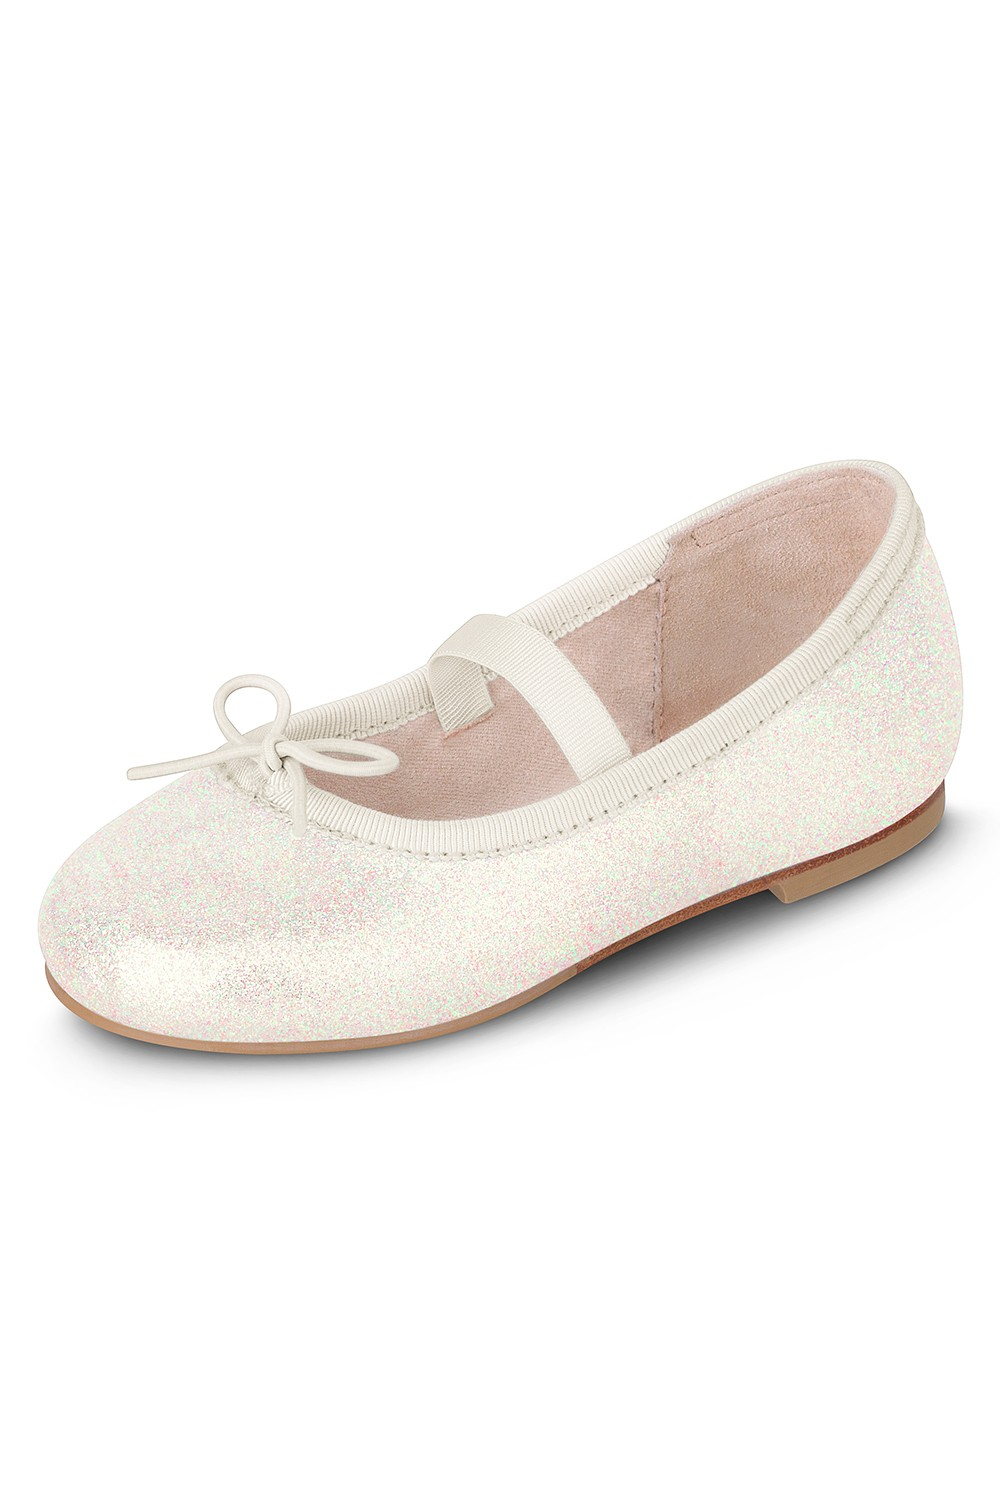 Beatrix - Menina Pequena Toddlers Fashion Shoes